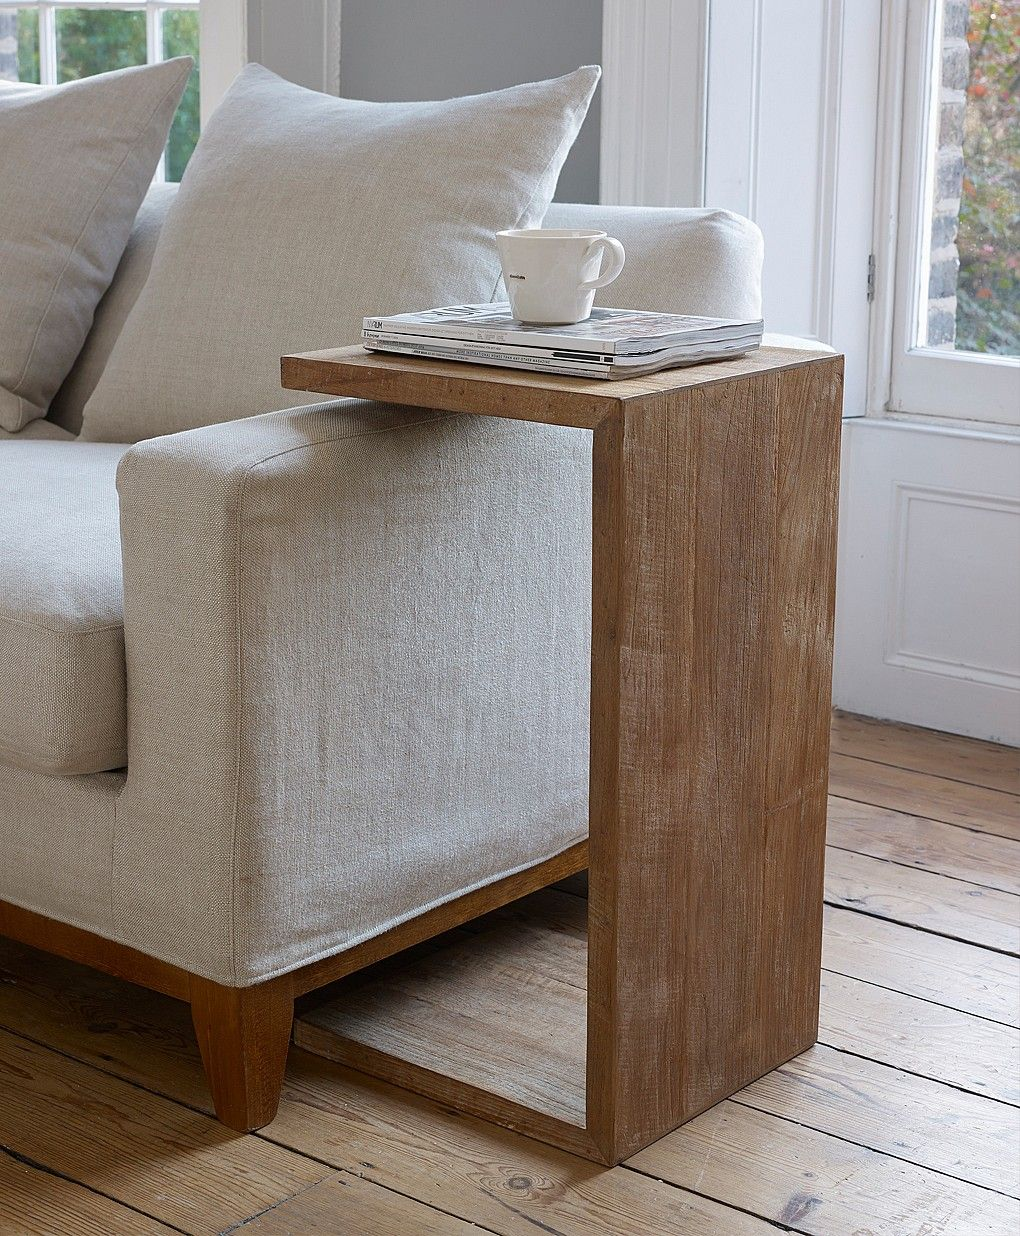 25+ Ideas About Modern Sofa Side Table You Can Use In Your Room  Http://about Ruth.com/25 Ideas About Modern Sofa Side Table You Can Use In Your Room/  In ...